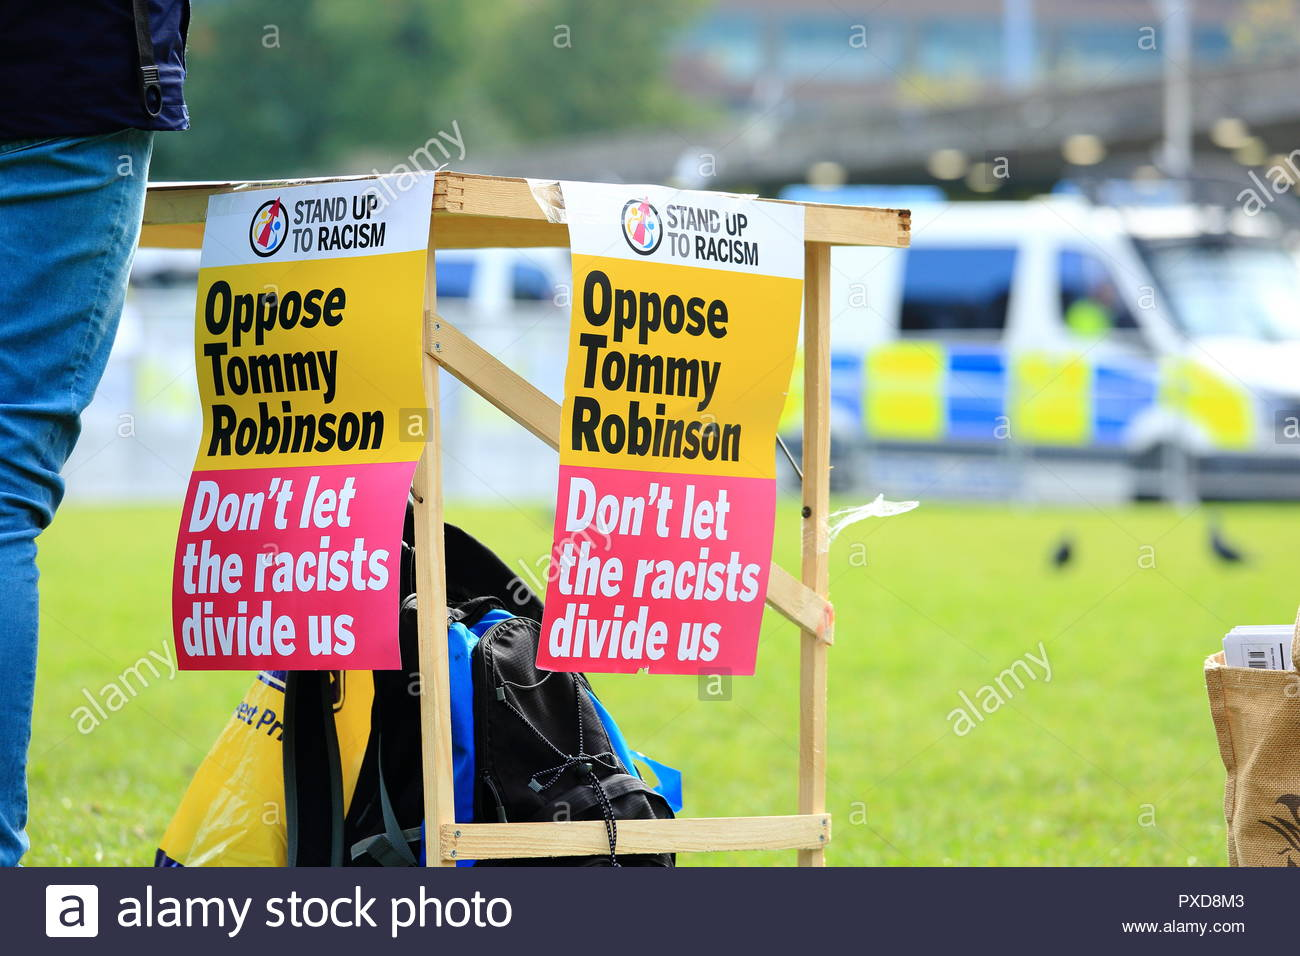 Stand Up To Racism. A Oppose Tommy Robinson Placard at Manchester Piccadilly Gardens Manchester UK Afternoon - Stock Image